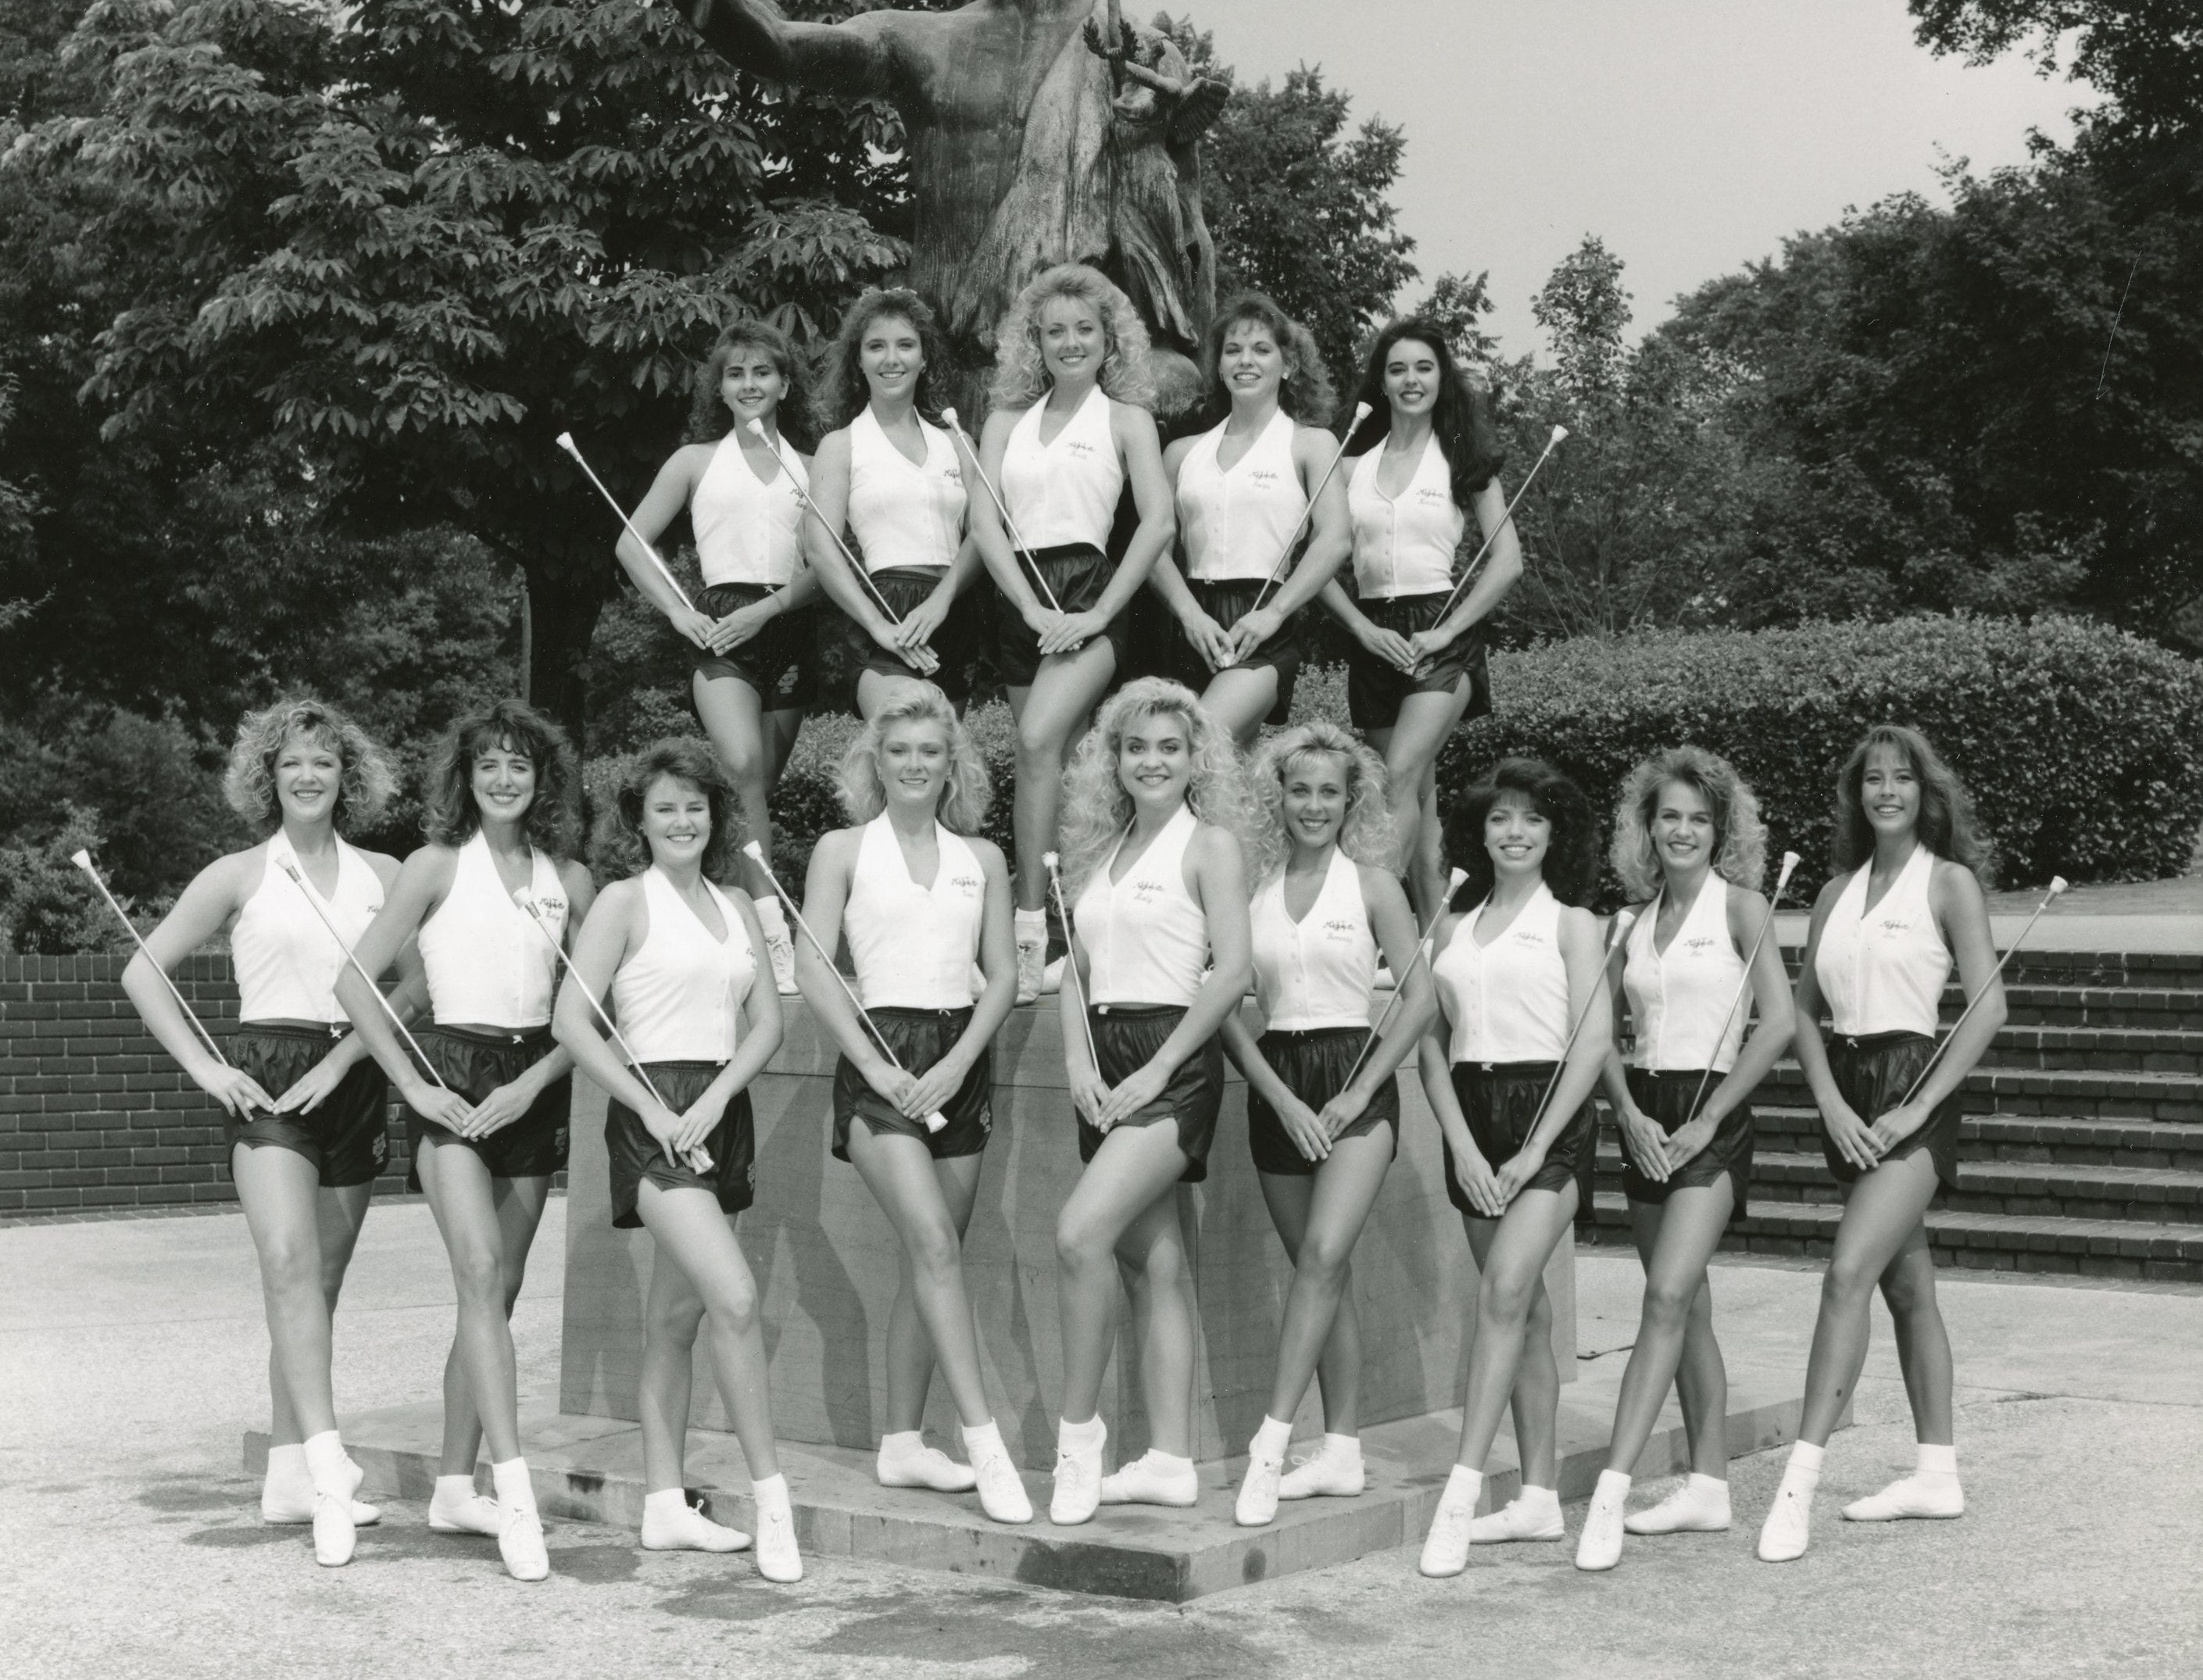 The 1994/1995 University of Tennessee majorettes.